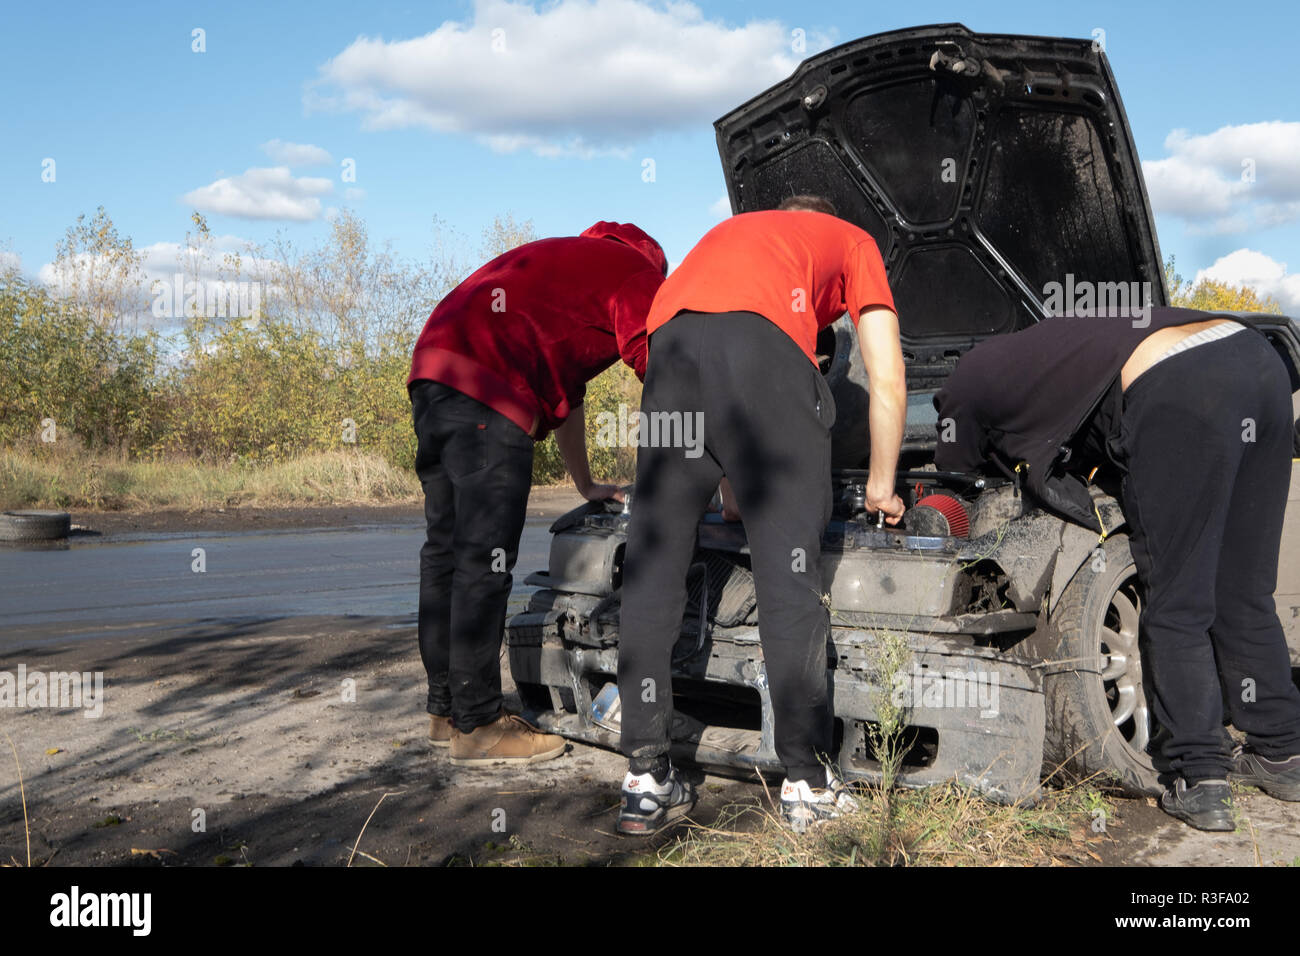 Warsaw / Poland - October 21, 2018: 3 men repairing damaged car during amateur drifting event in Ursus, abandoned tractor factory in Warsaw outskirts. - Stock Image